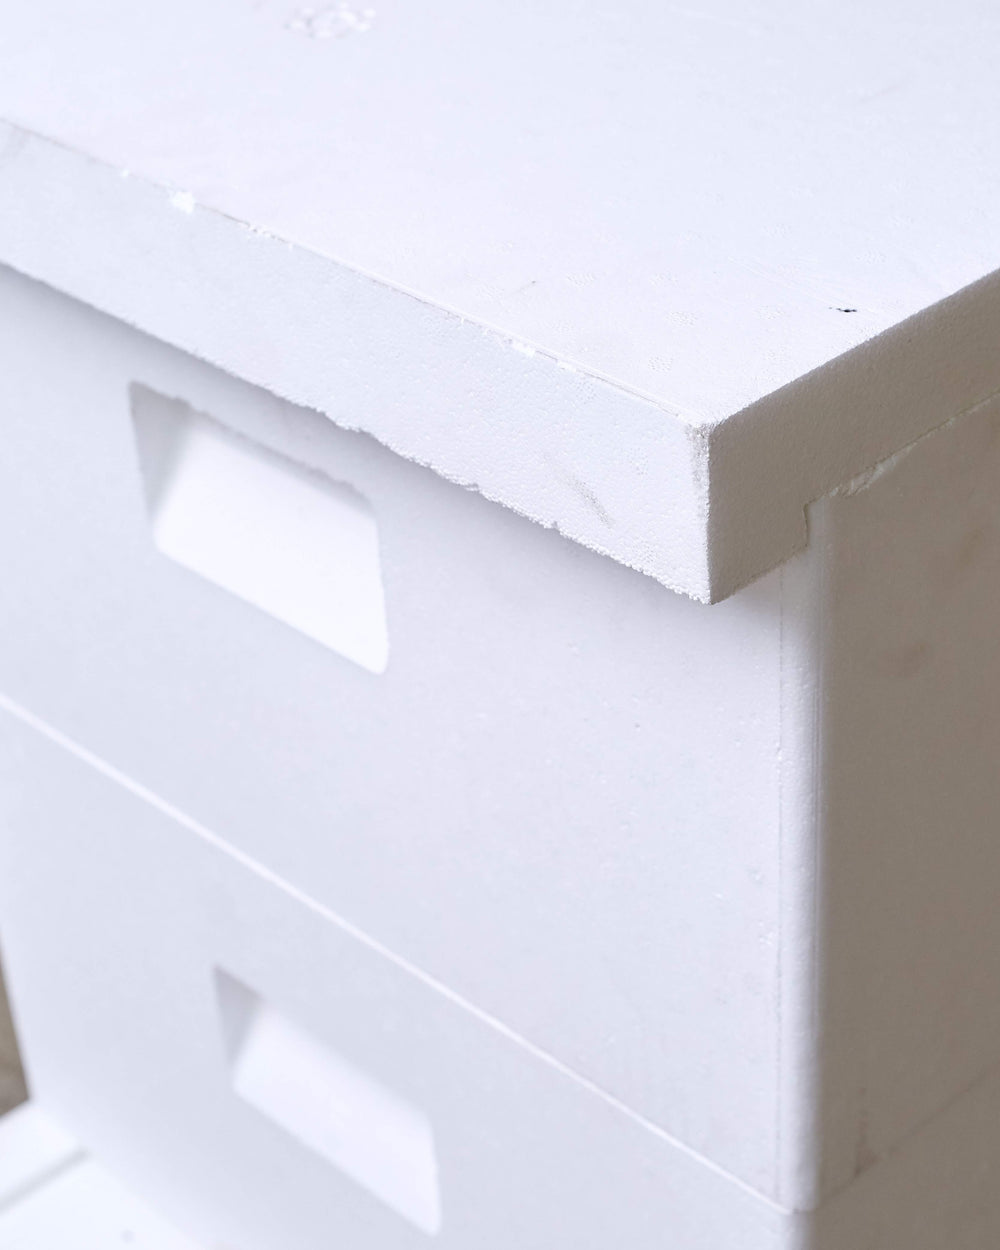 Beaver Plastics Polystyrene Brood Box